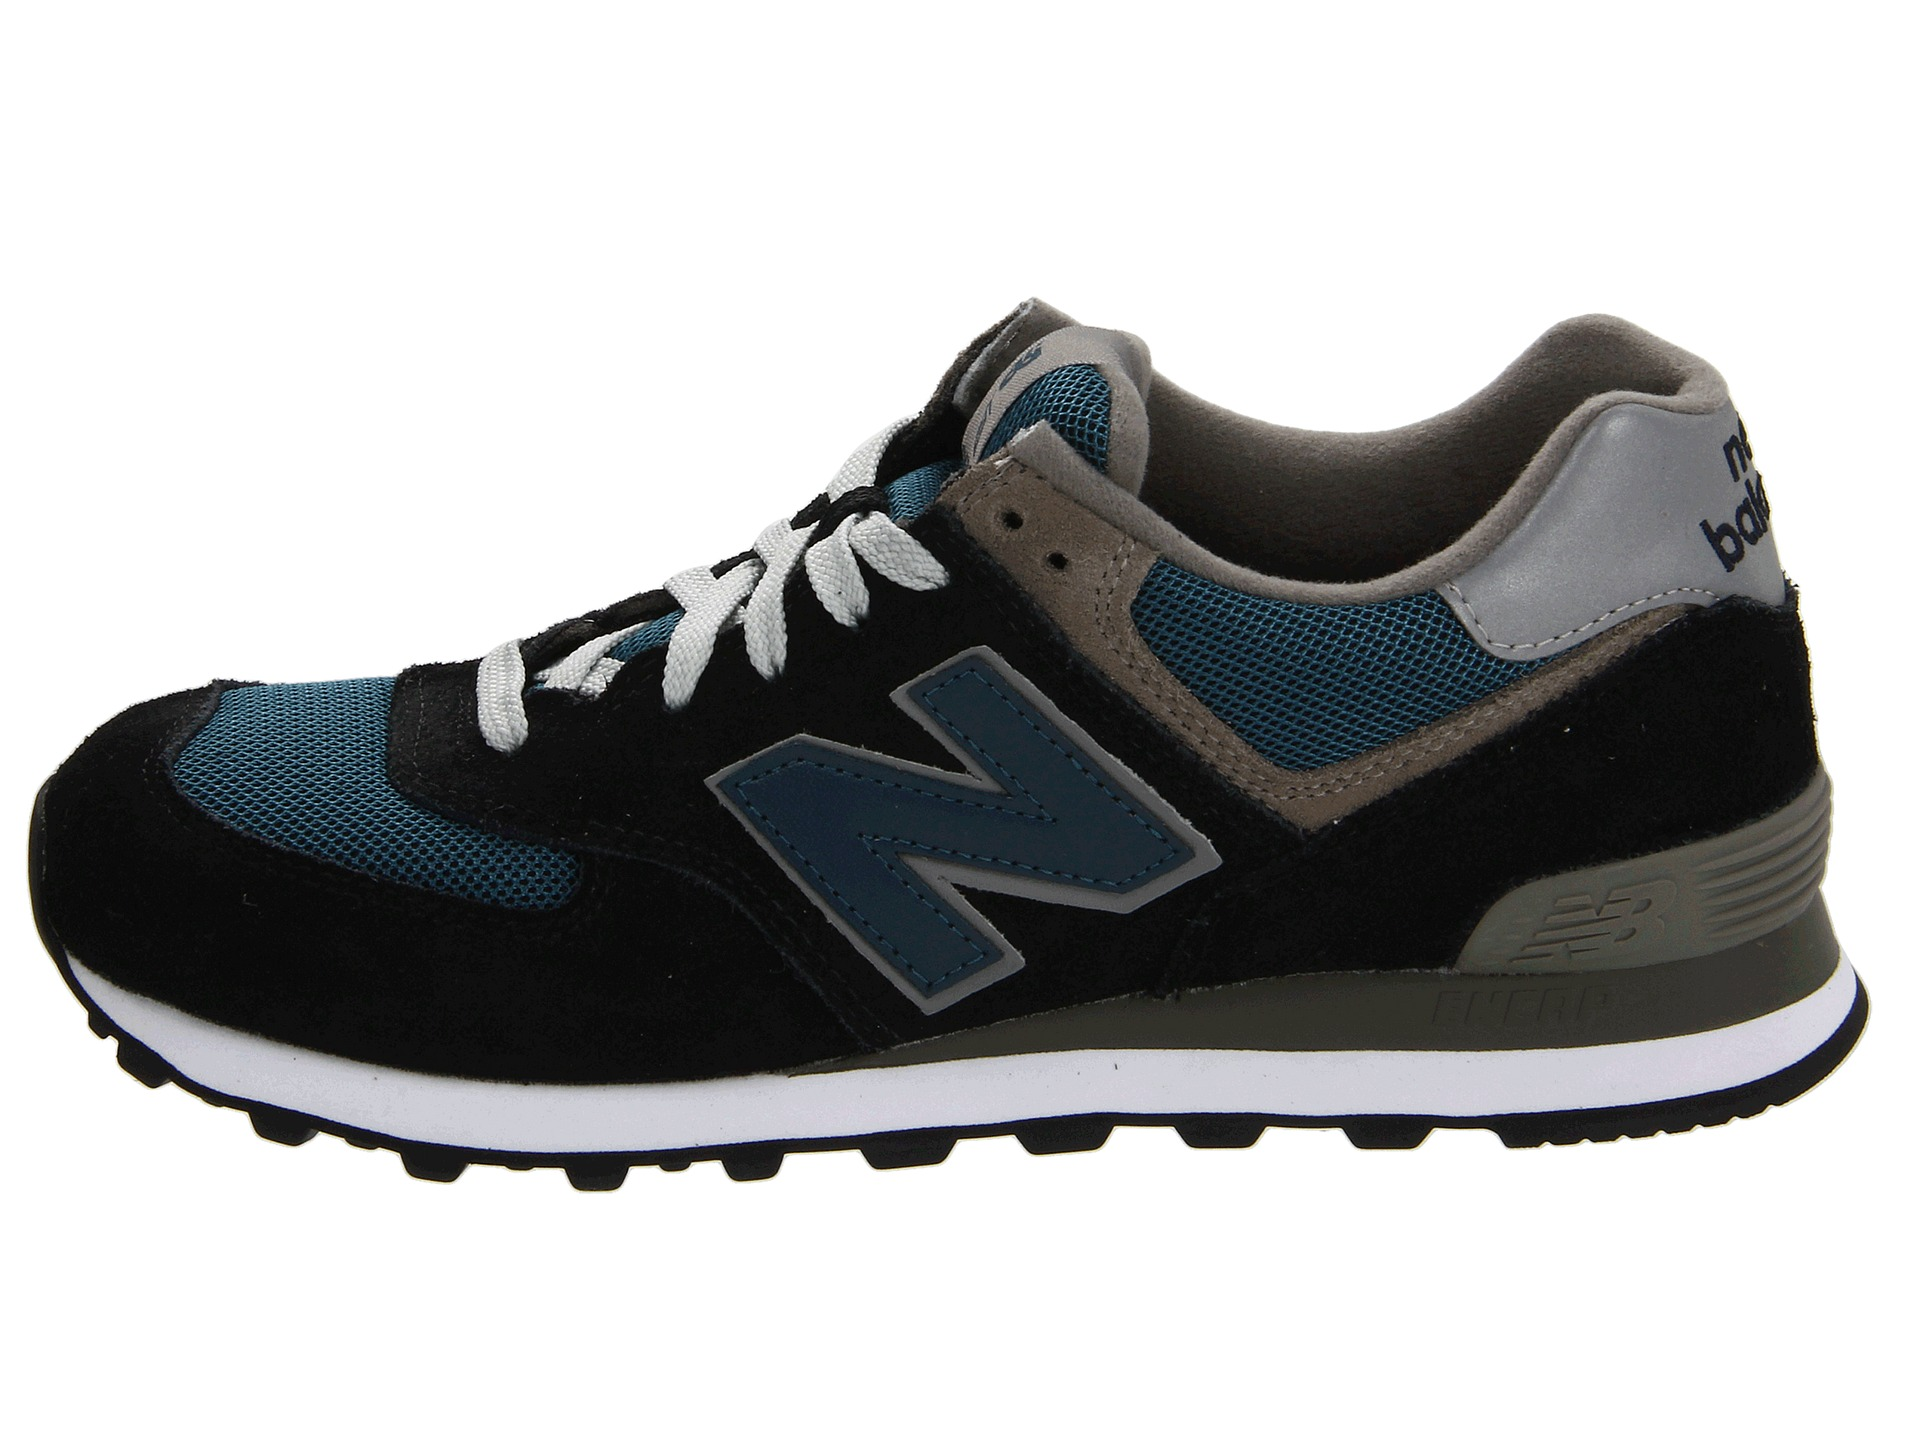 new balance classics m574 navy teal grey free shipping both ways. Black Bedroom Furniture Sets. Home Design Ideas